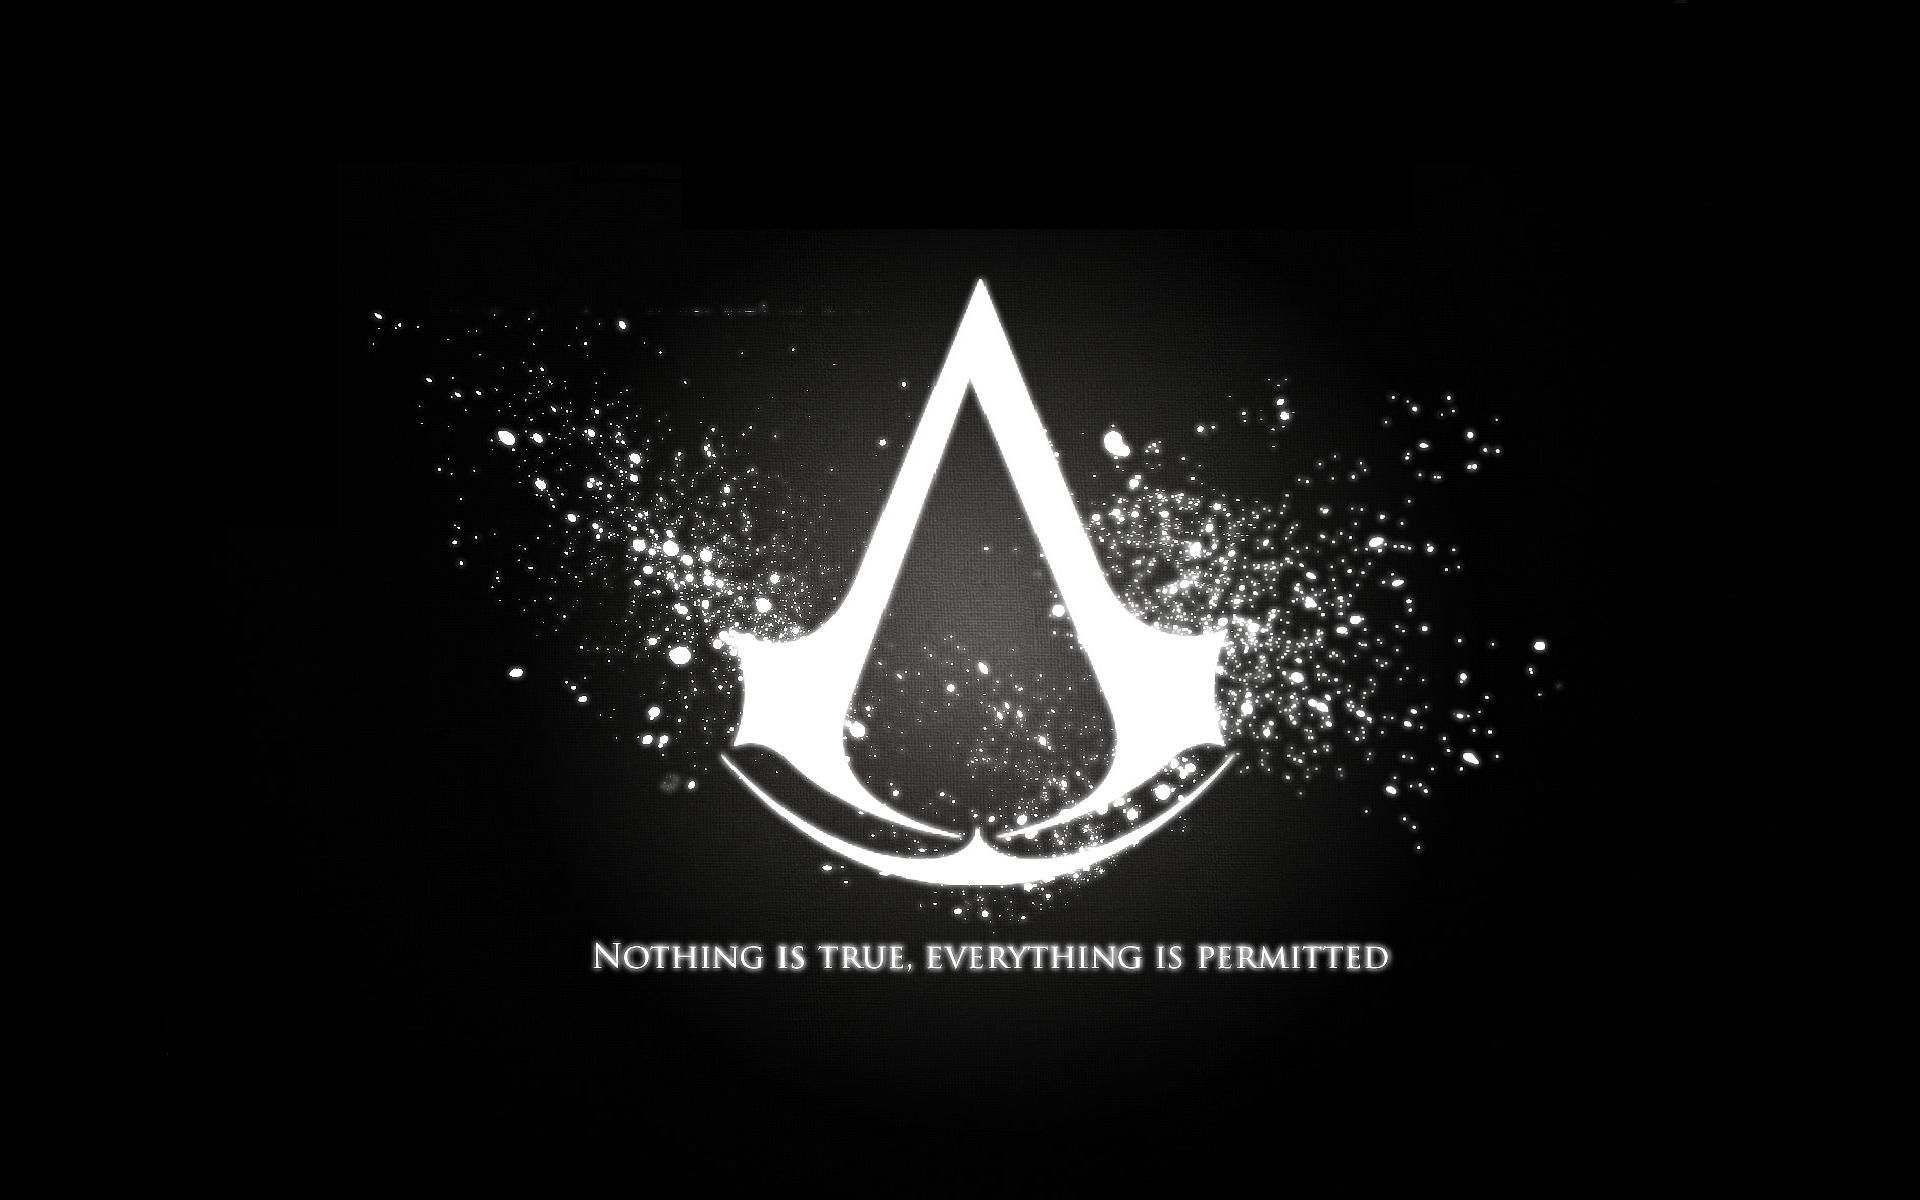 assassins creed wallpaper hd logo